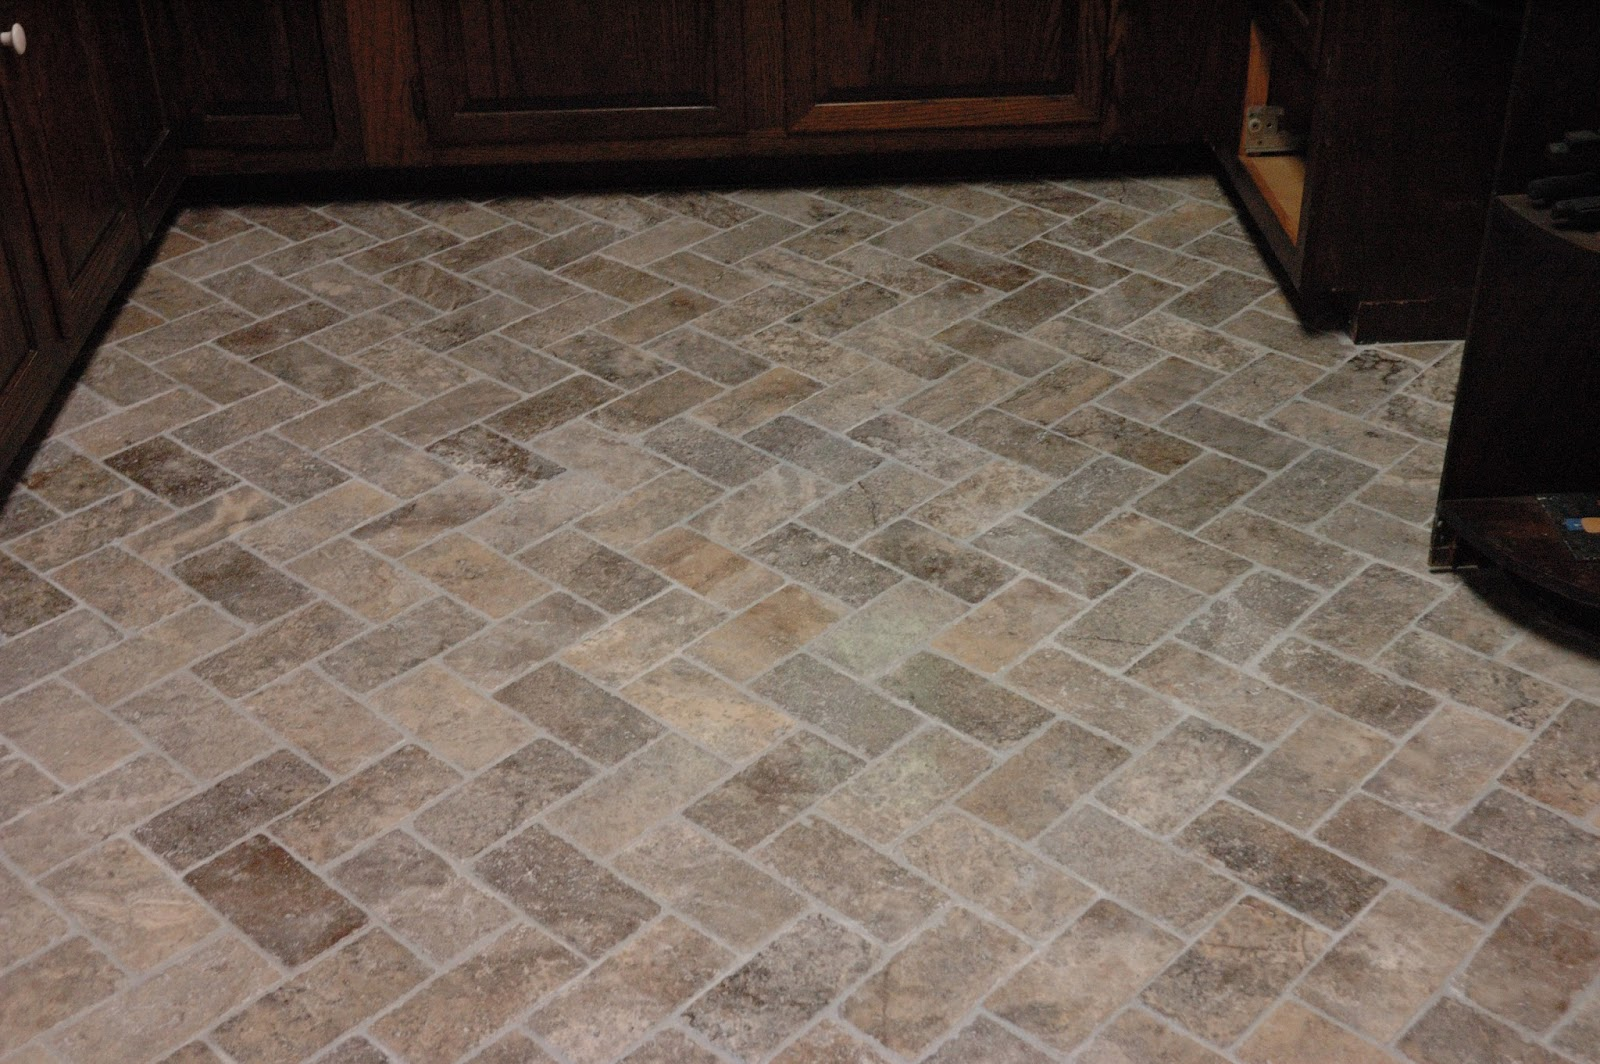 Stone Kitchen Floor Tiles Custom Bathroom Remodeling Natural Stone Herringbone Tile Floor